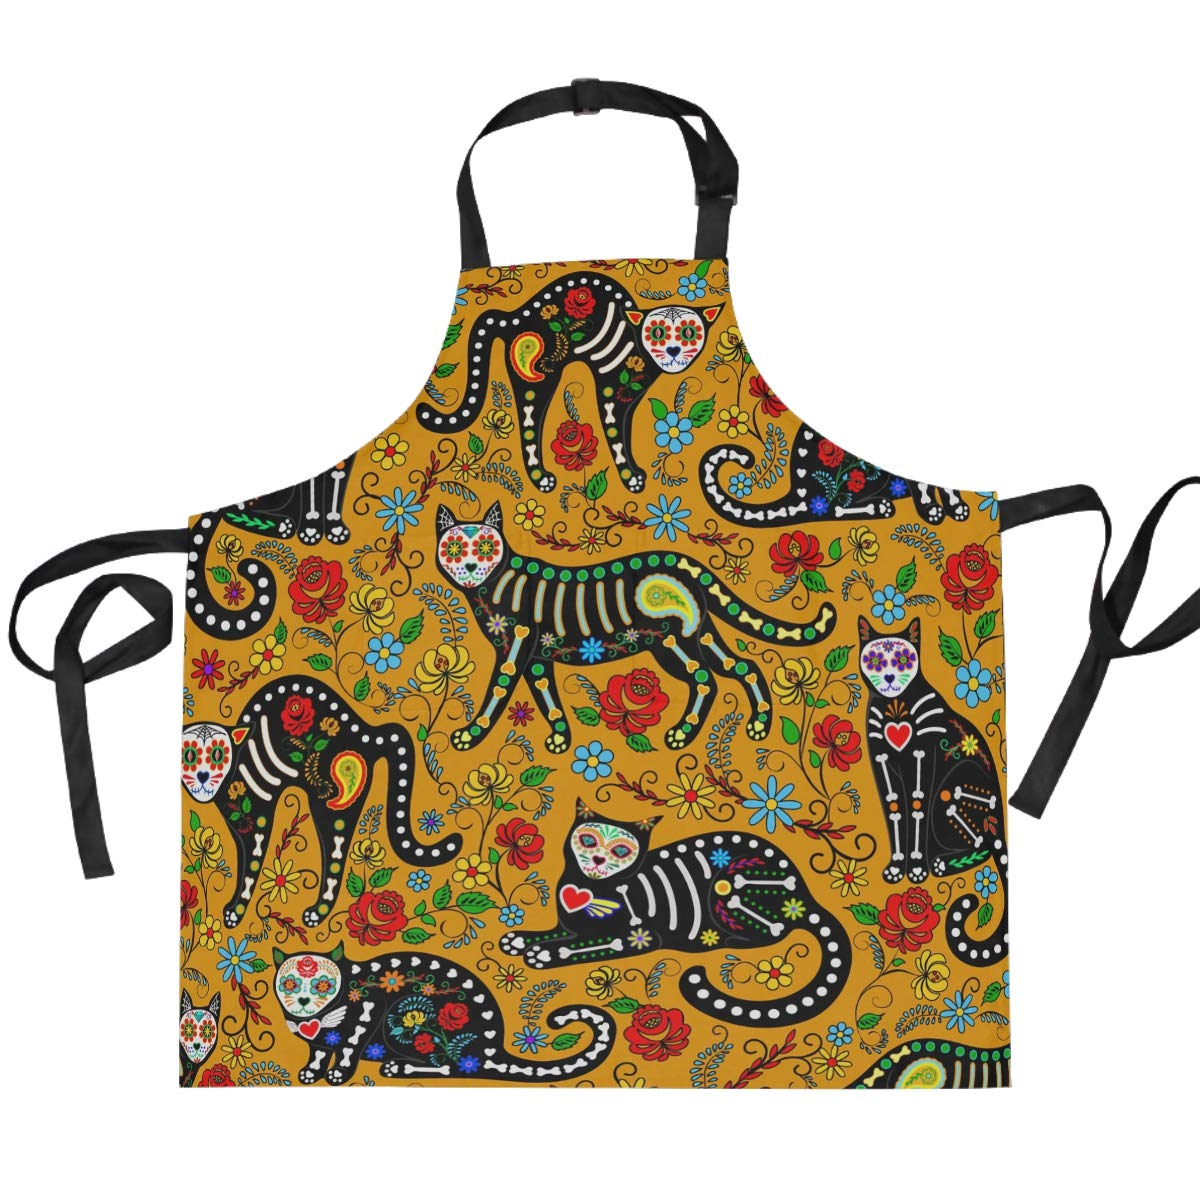 Unisex Apron Halloween Skull Black Cats Dia de Muertos Adjustable Apron Pockets Men Women Kitchen Personal Decor Cooking Baking Kitchen Gardening Waist Apron Adult Apron,Twill,Multicolor